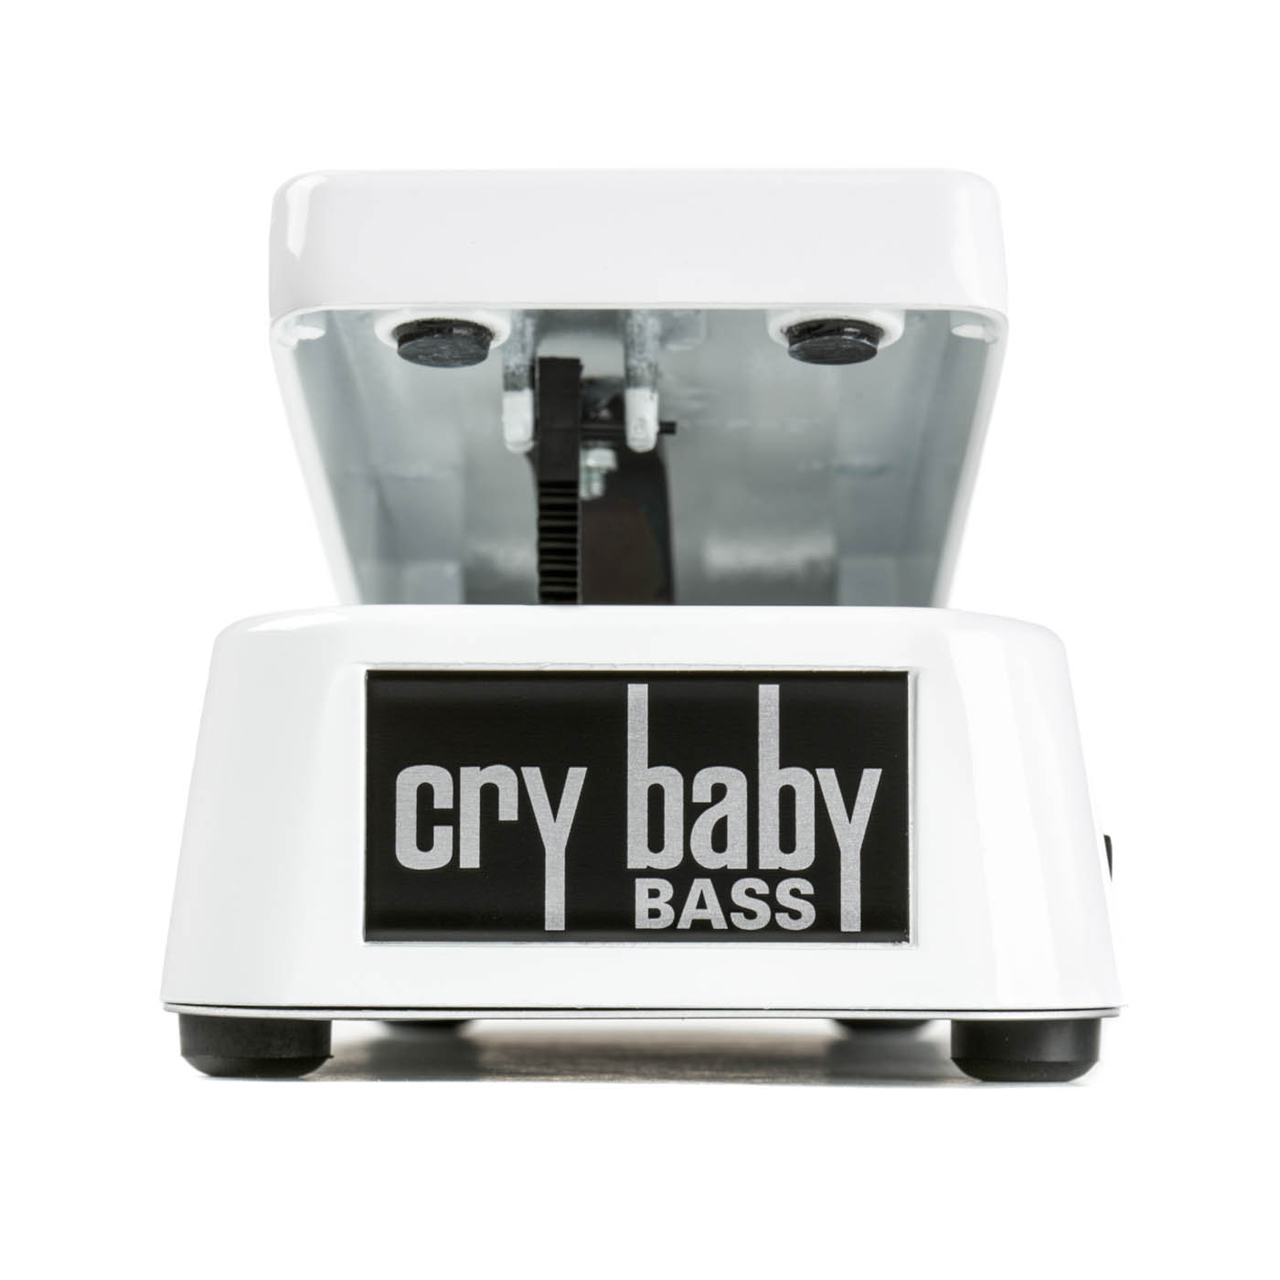 Pedal Crybaby Bass Wah 105q Dunlop  - Audio Video & cia